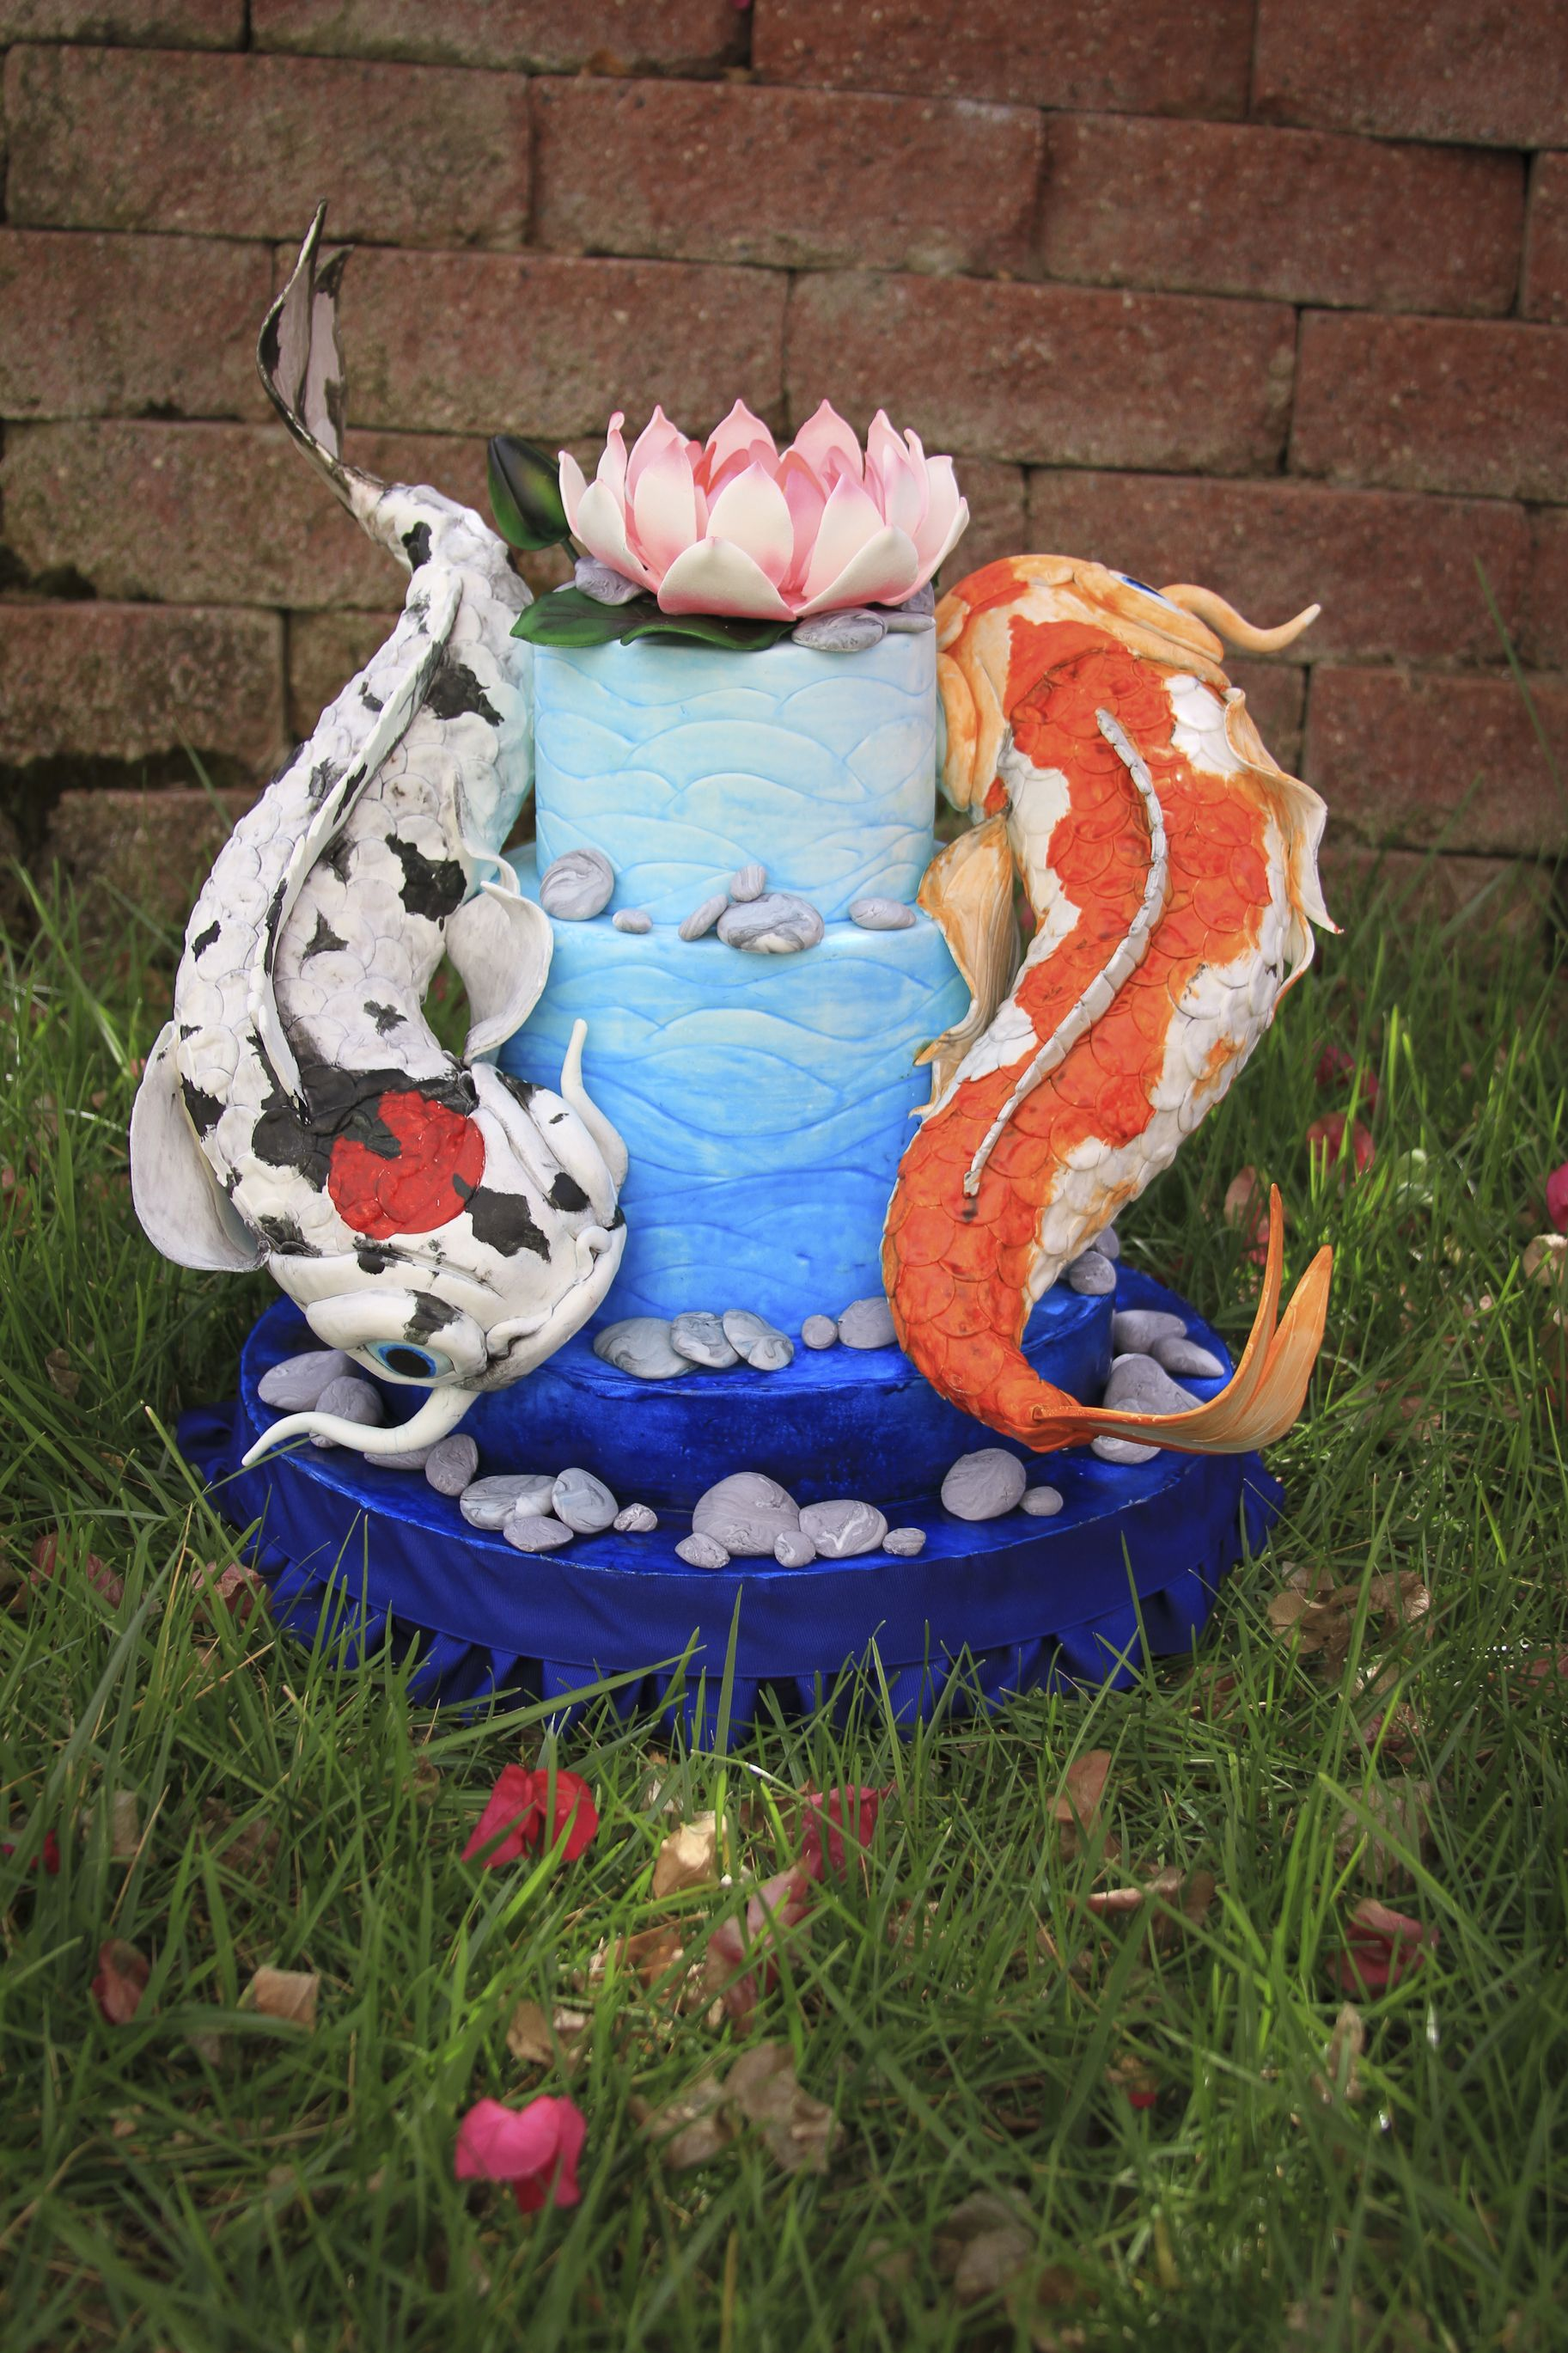 Cake Art Flower Moulding Paste : Koi Fish - the Koi fish are made of modeling chocolate and ...